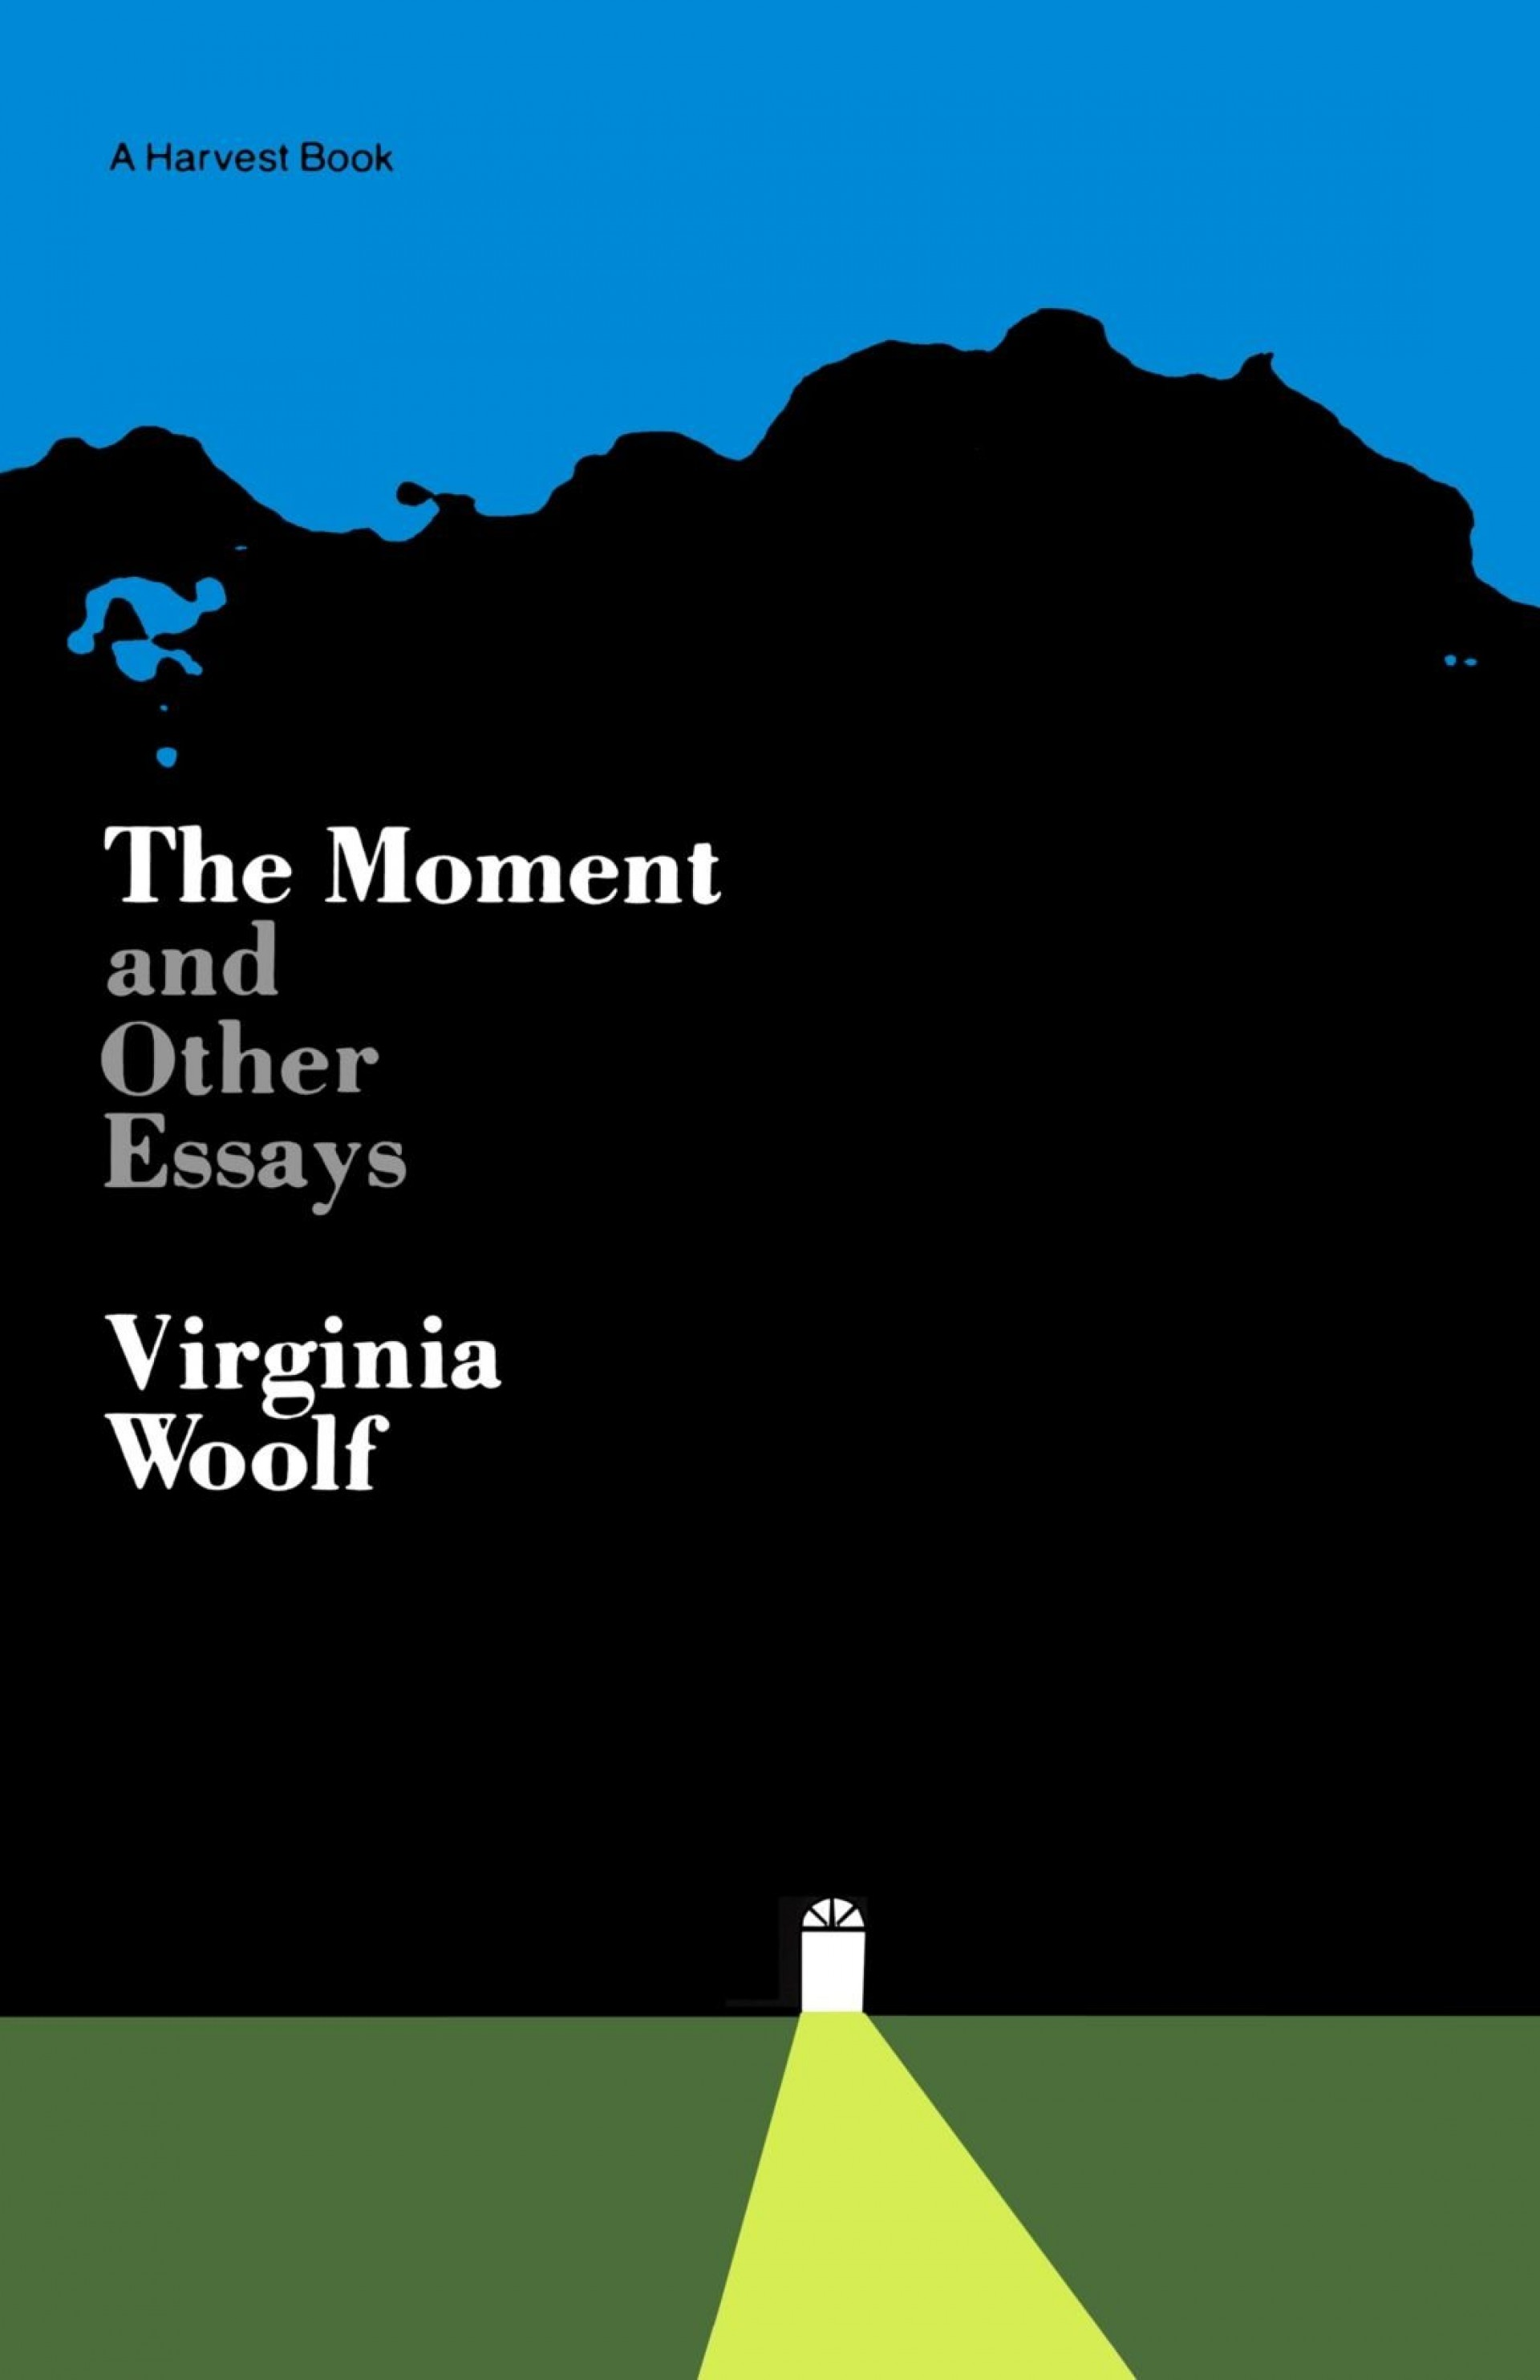 011 Virginia Woolf Essays Gs8rmzl Essay Unusual The Modern Pdf Woolf's Sketching Past Fiction Analysis 1920